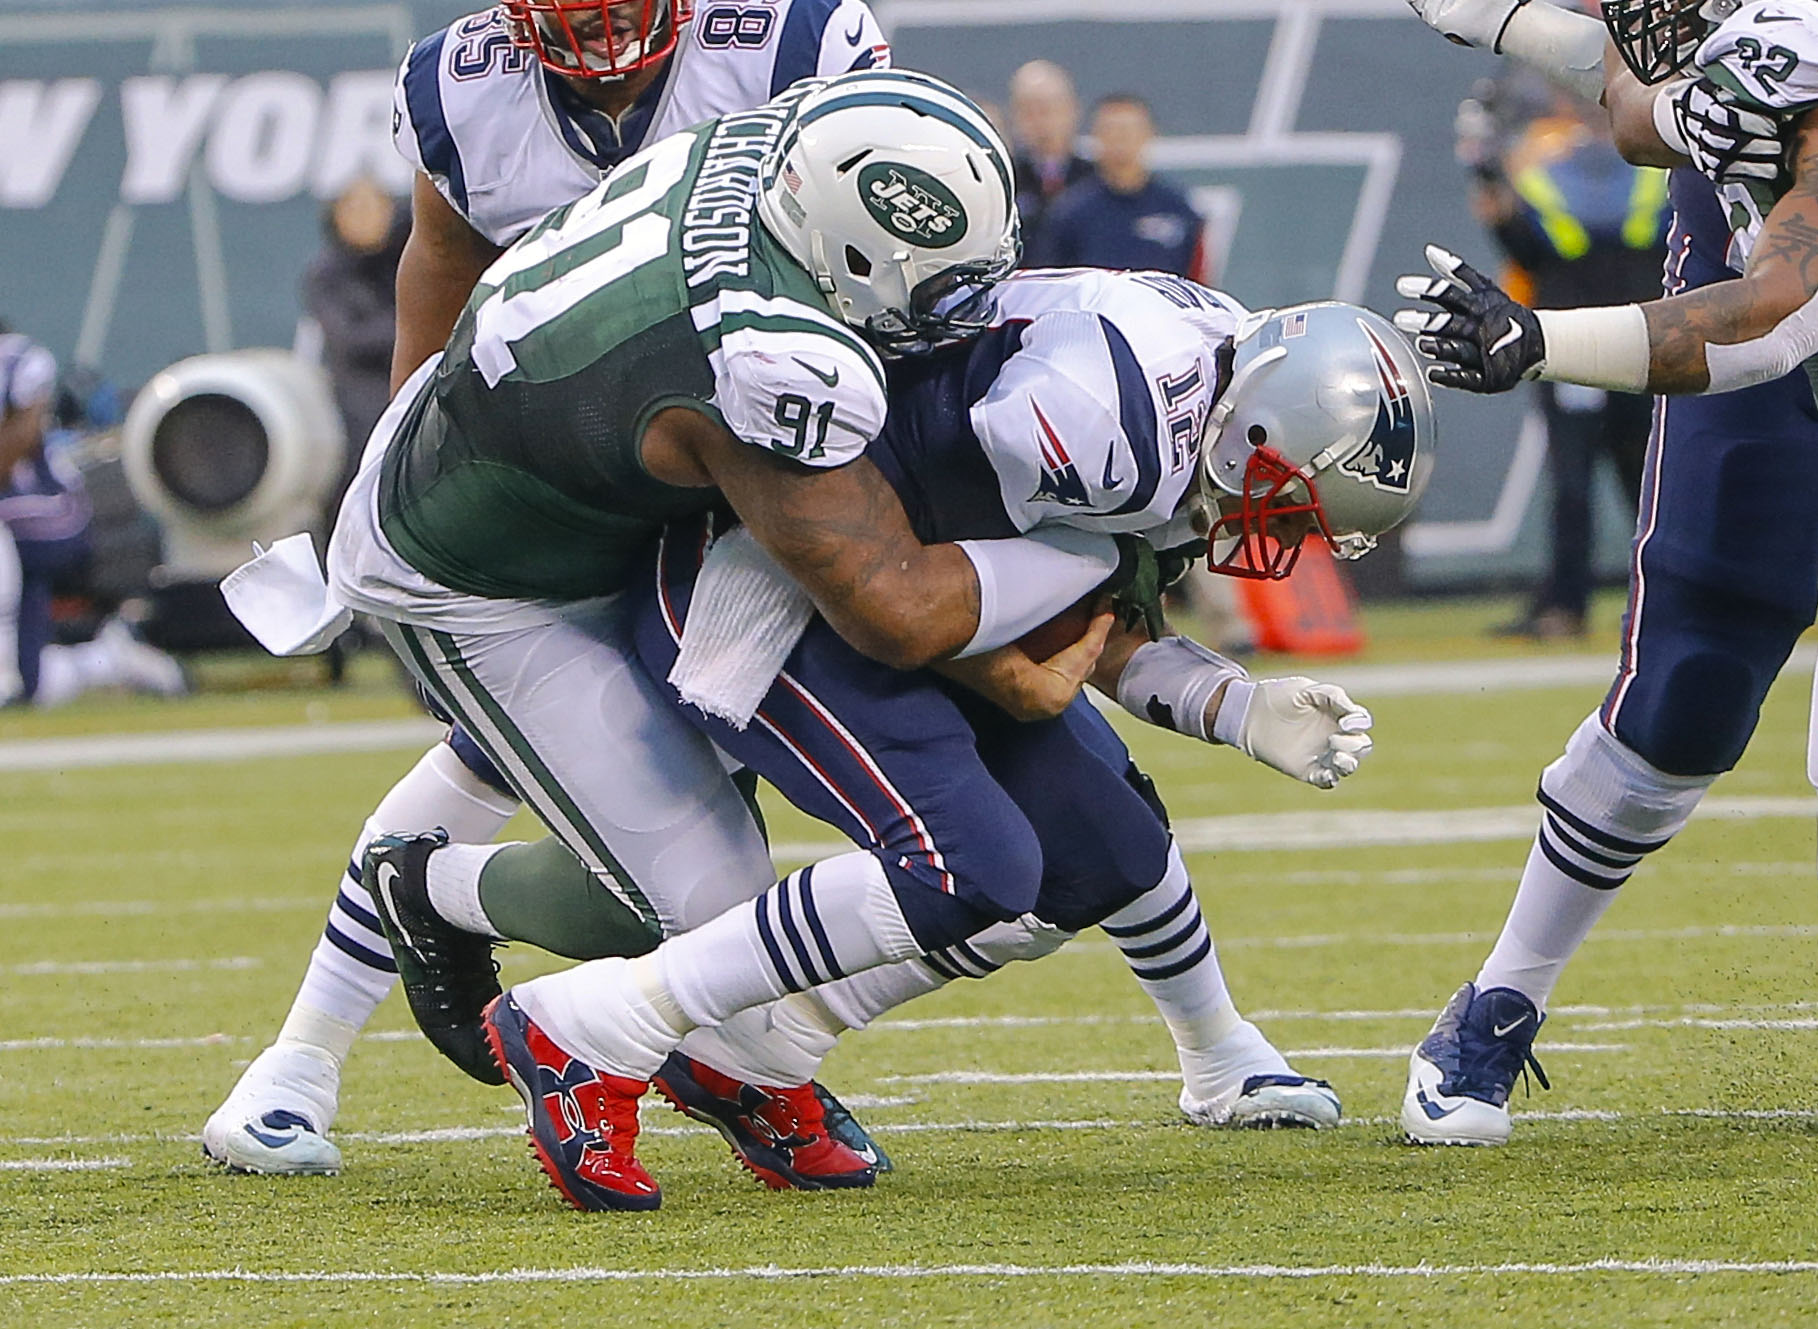 9020278-nfl-new-england-patriots-at-new-york-jets